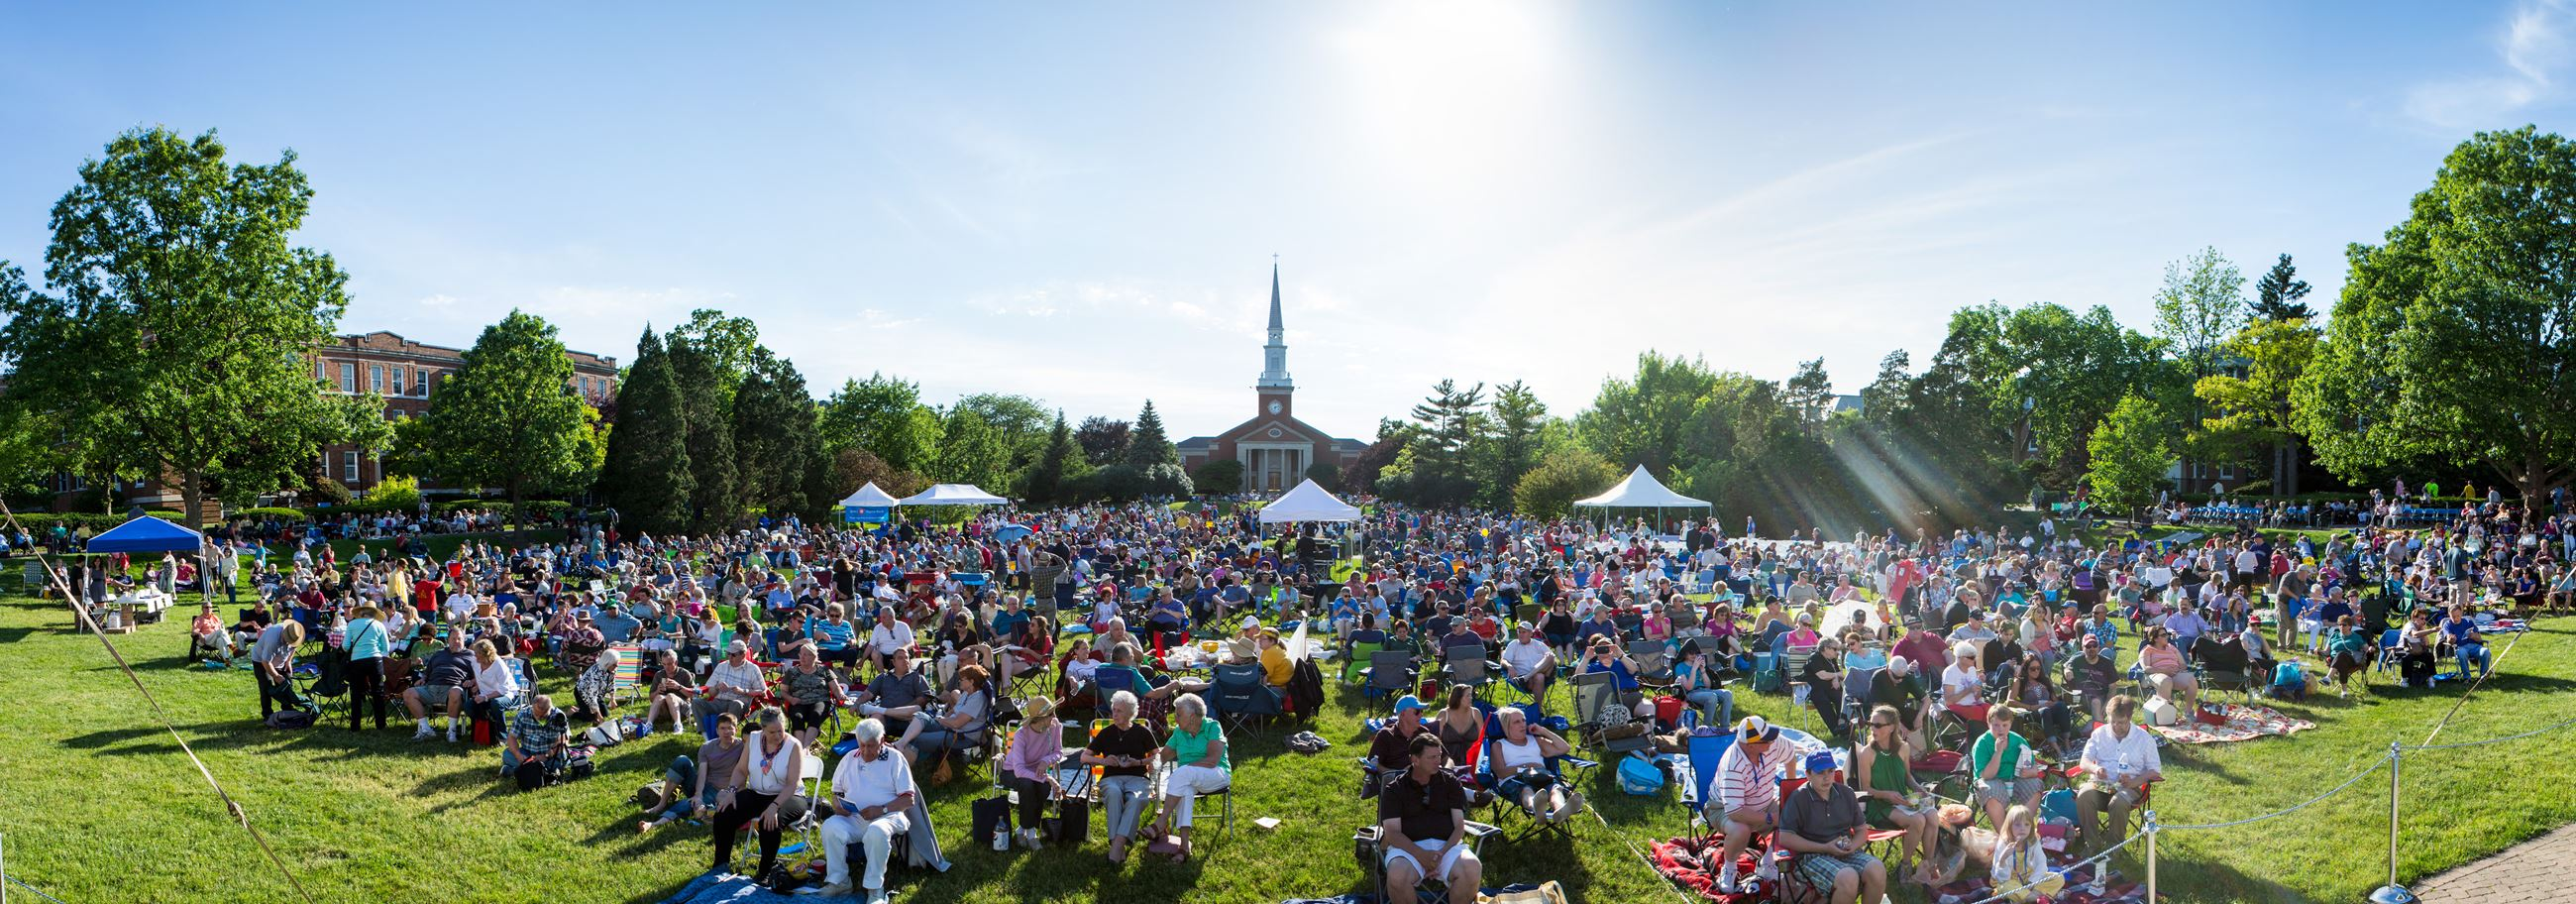 June Jazz crowd 2015